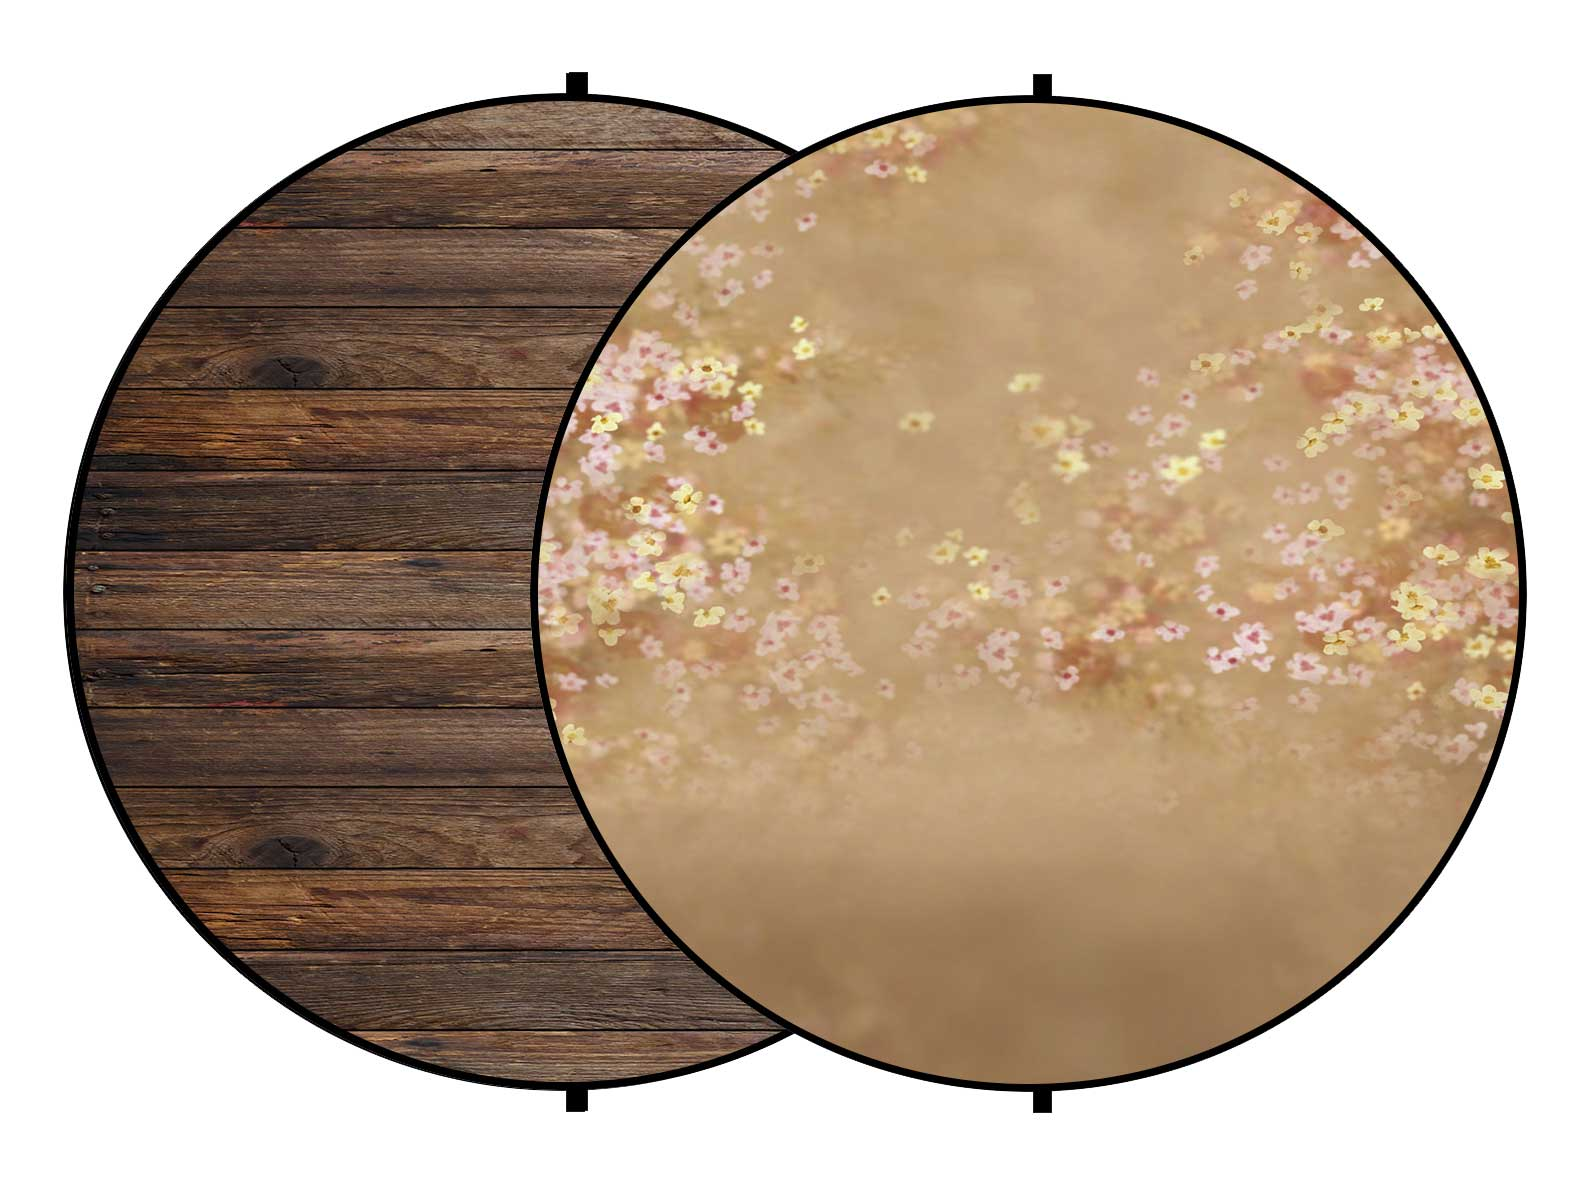 Fox Brown Wood/ Flowers Collapsible Photography Backdrop 5x5ft(1.5x1.5m)